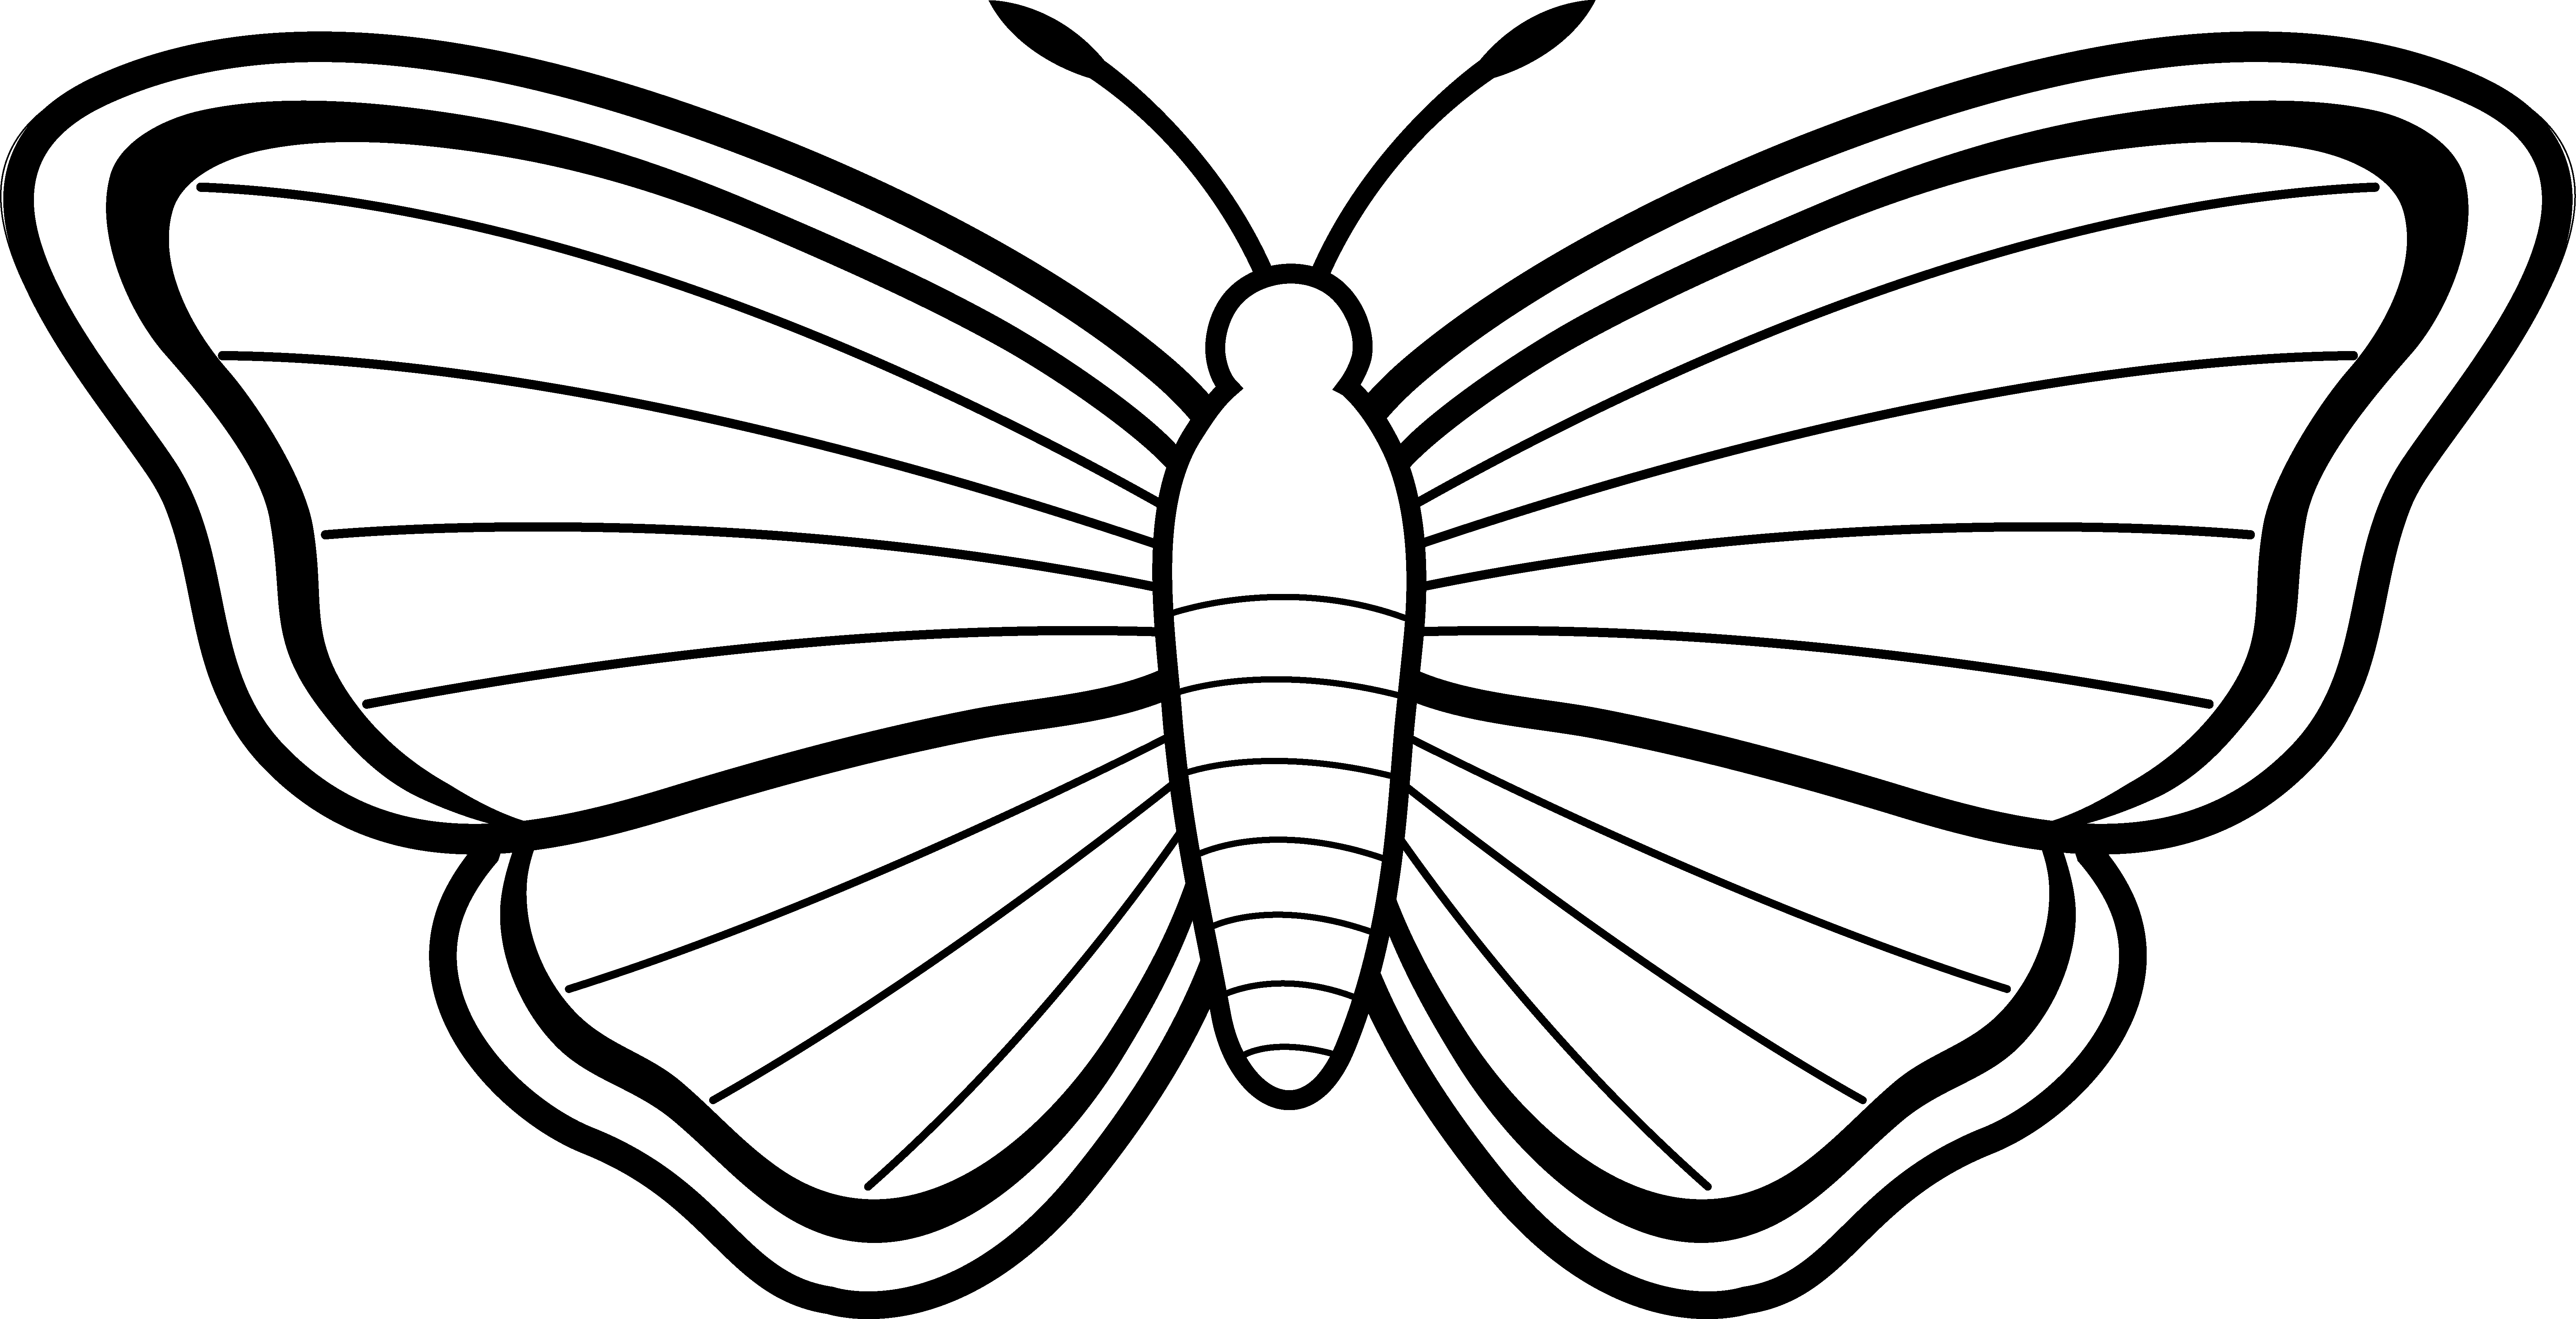 butterfly black and white clipart simple